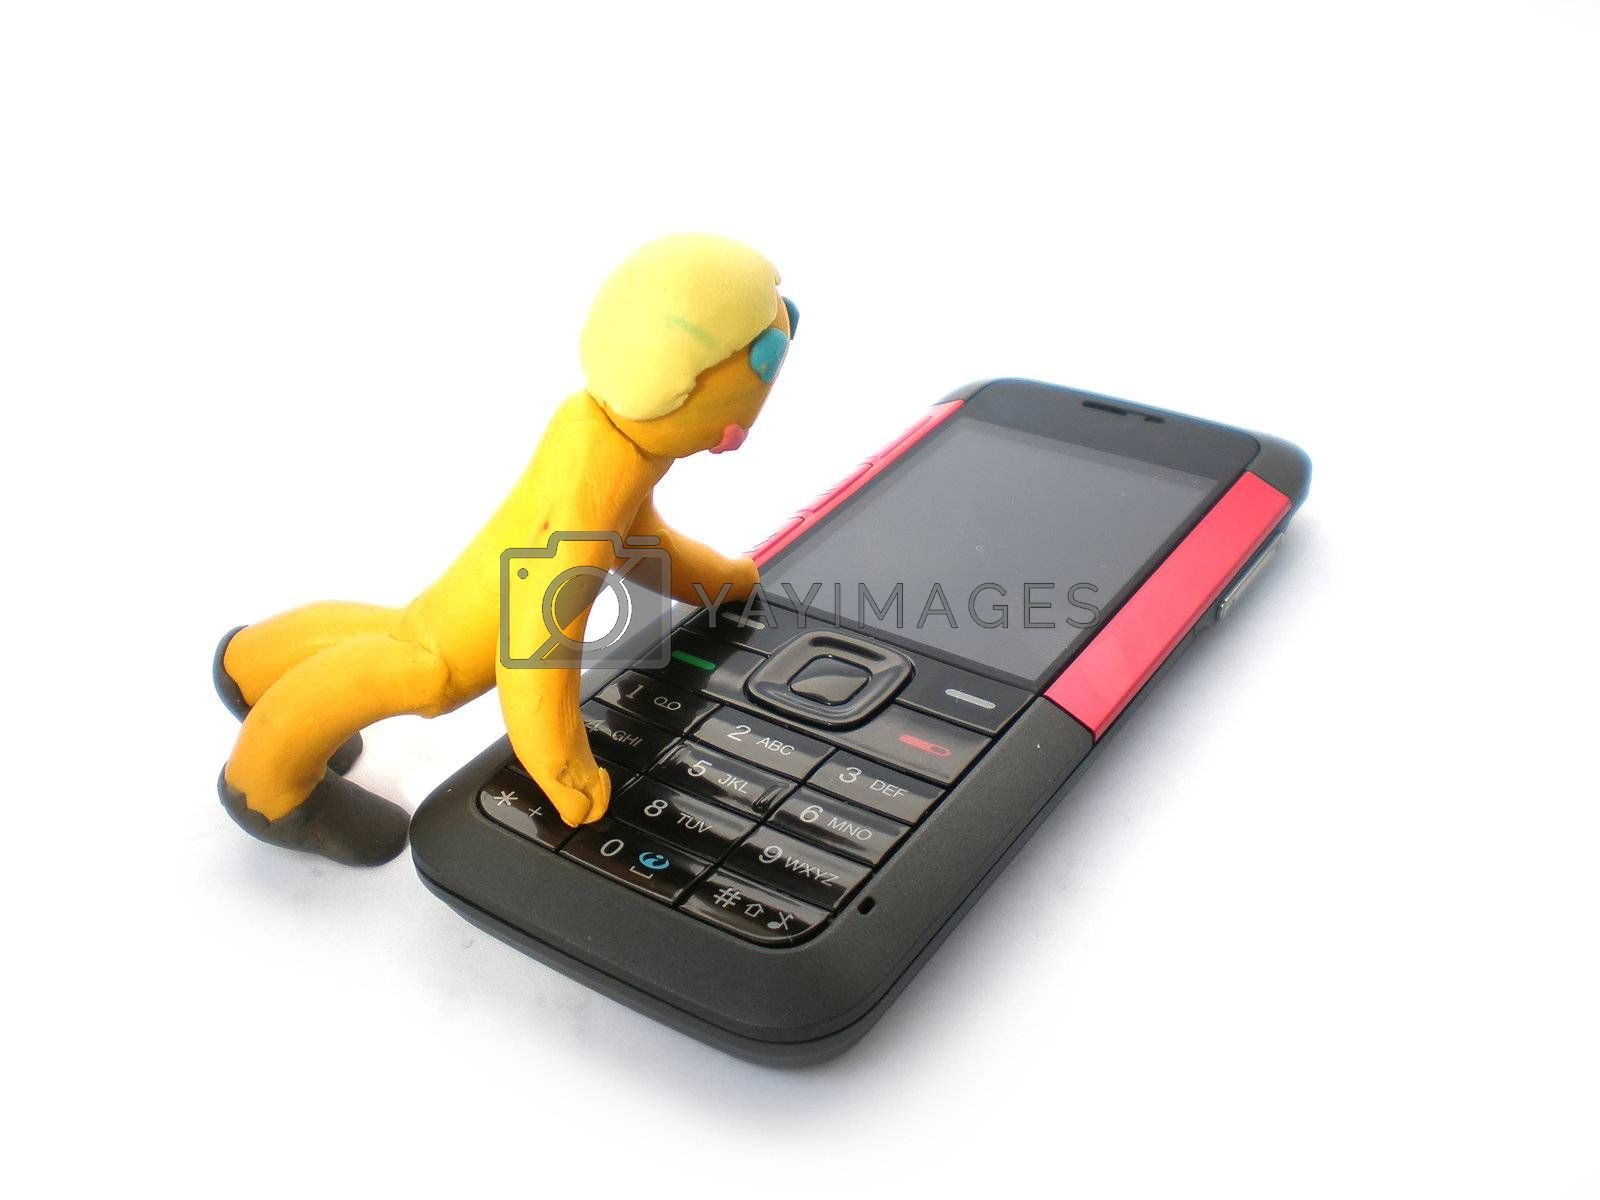 plasticine man figure with phone on white background